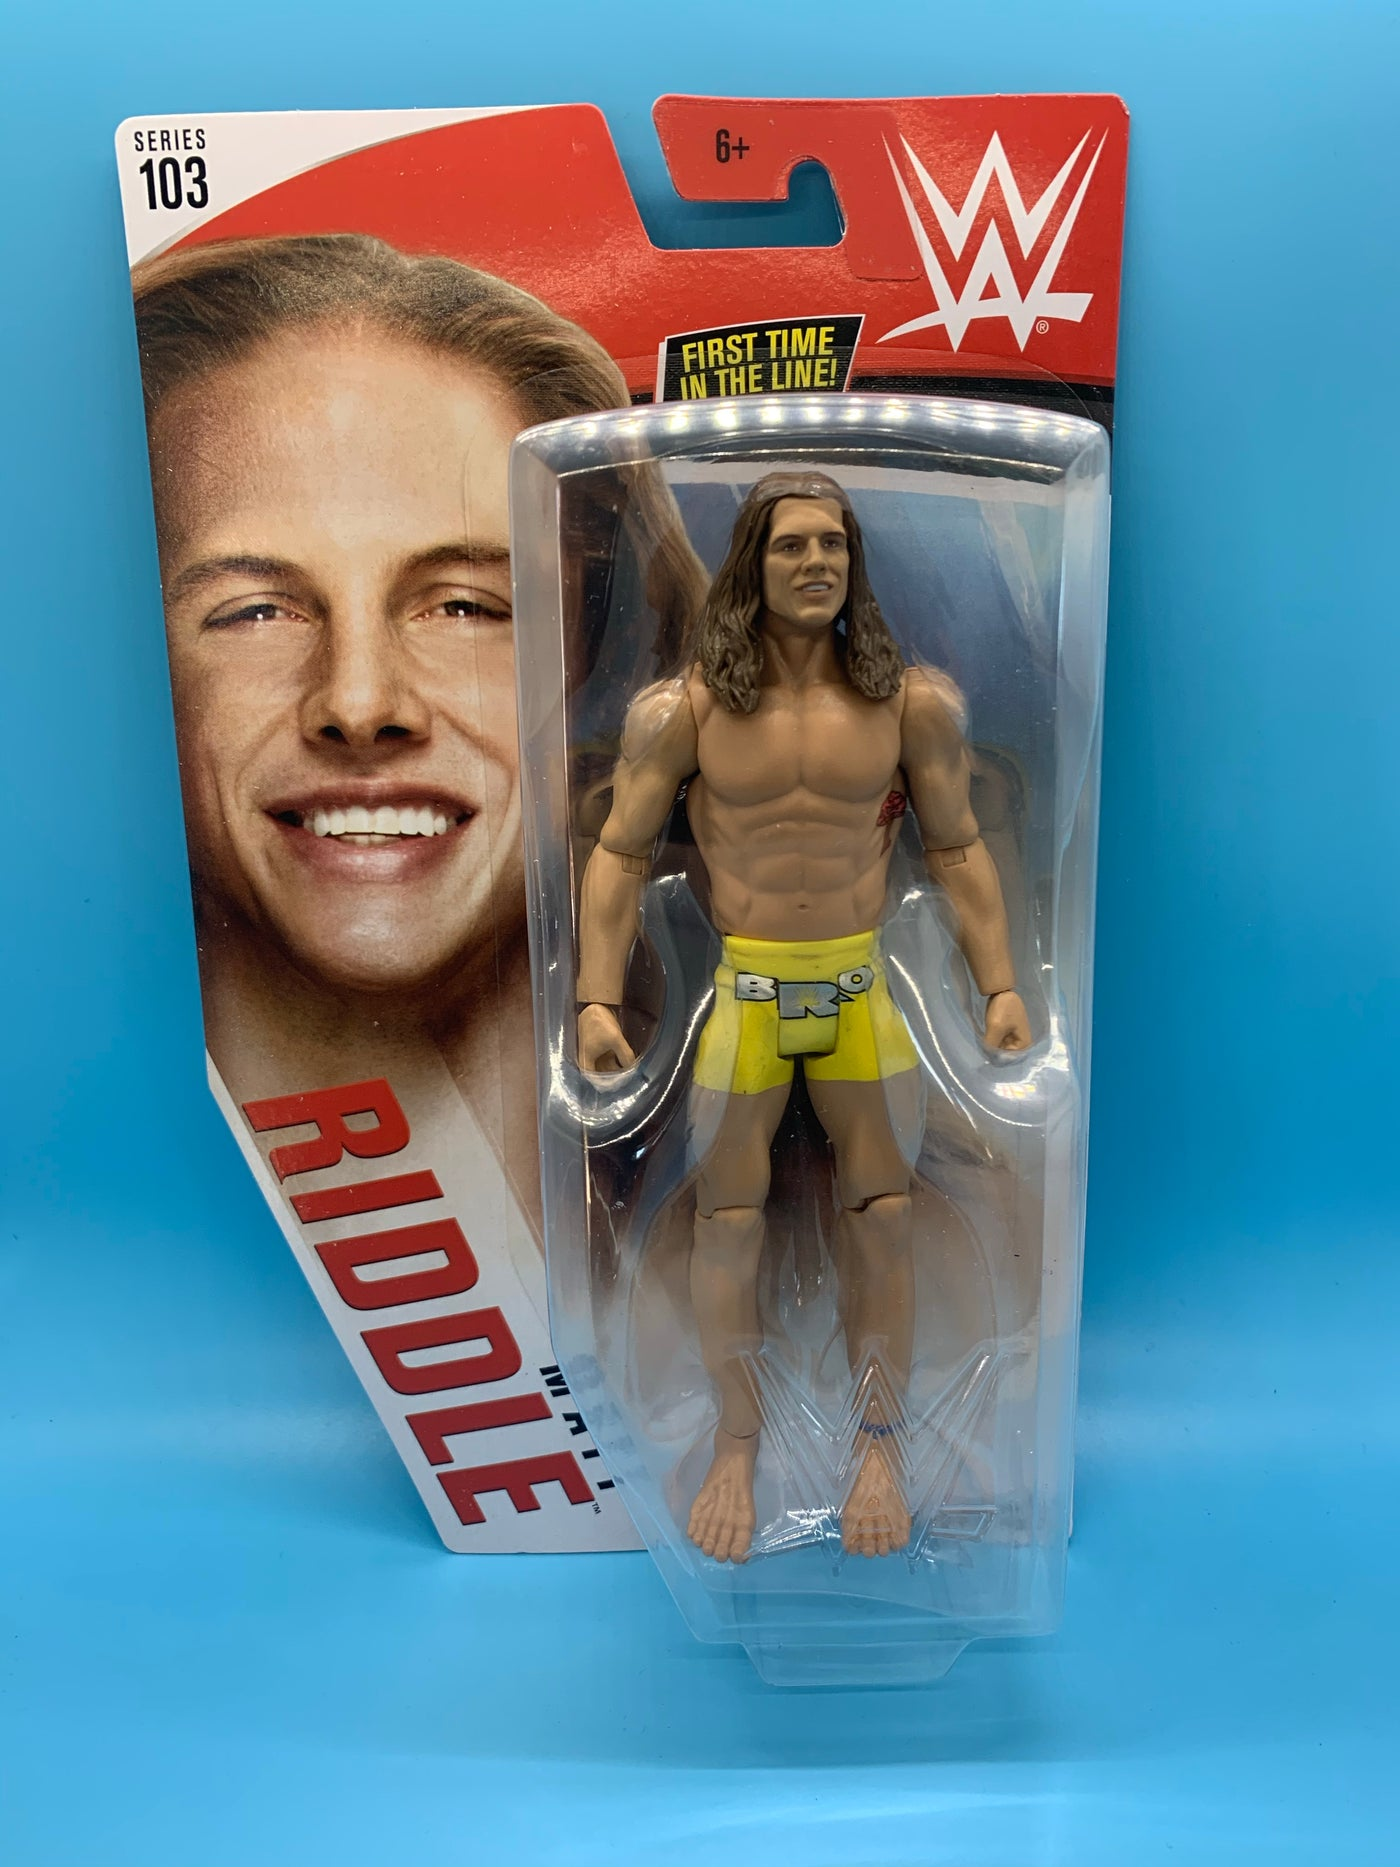 WWE Mattel Matt Riddle Series 103 Basic Figure